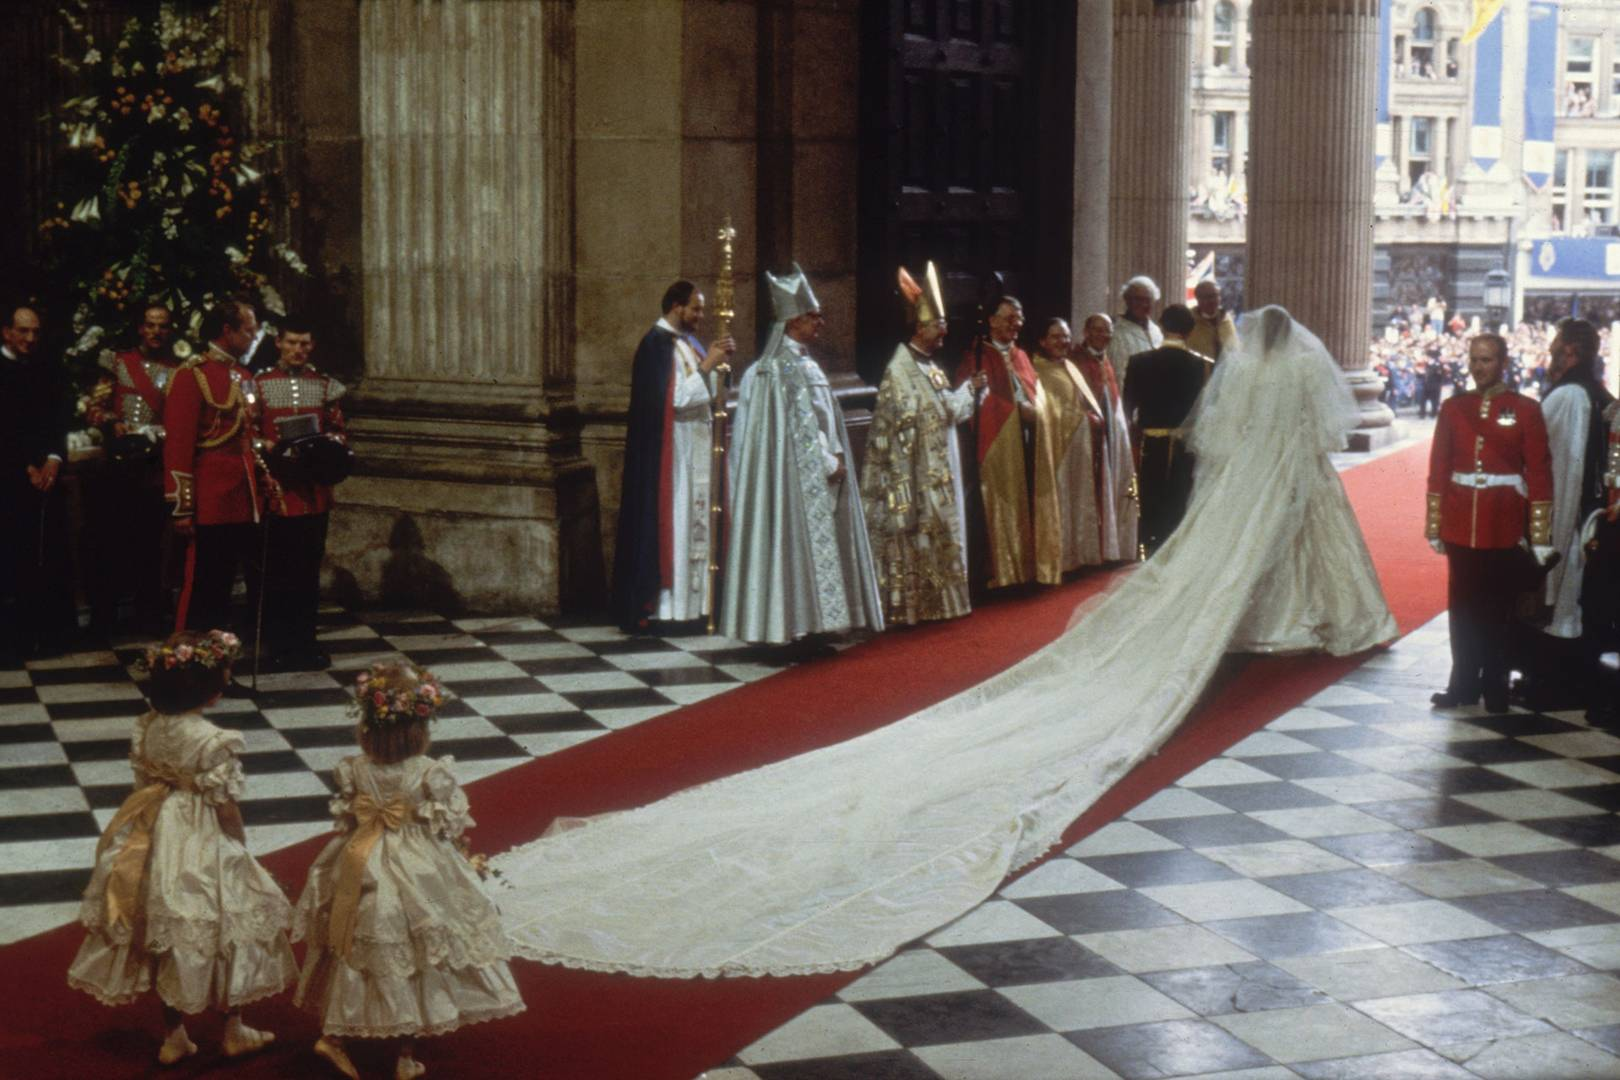 bridal gown of Diana Spencer